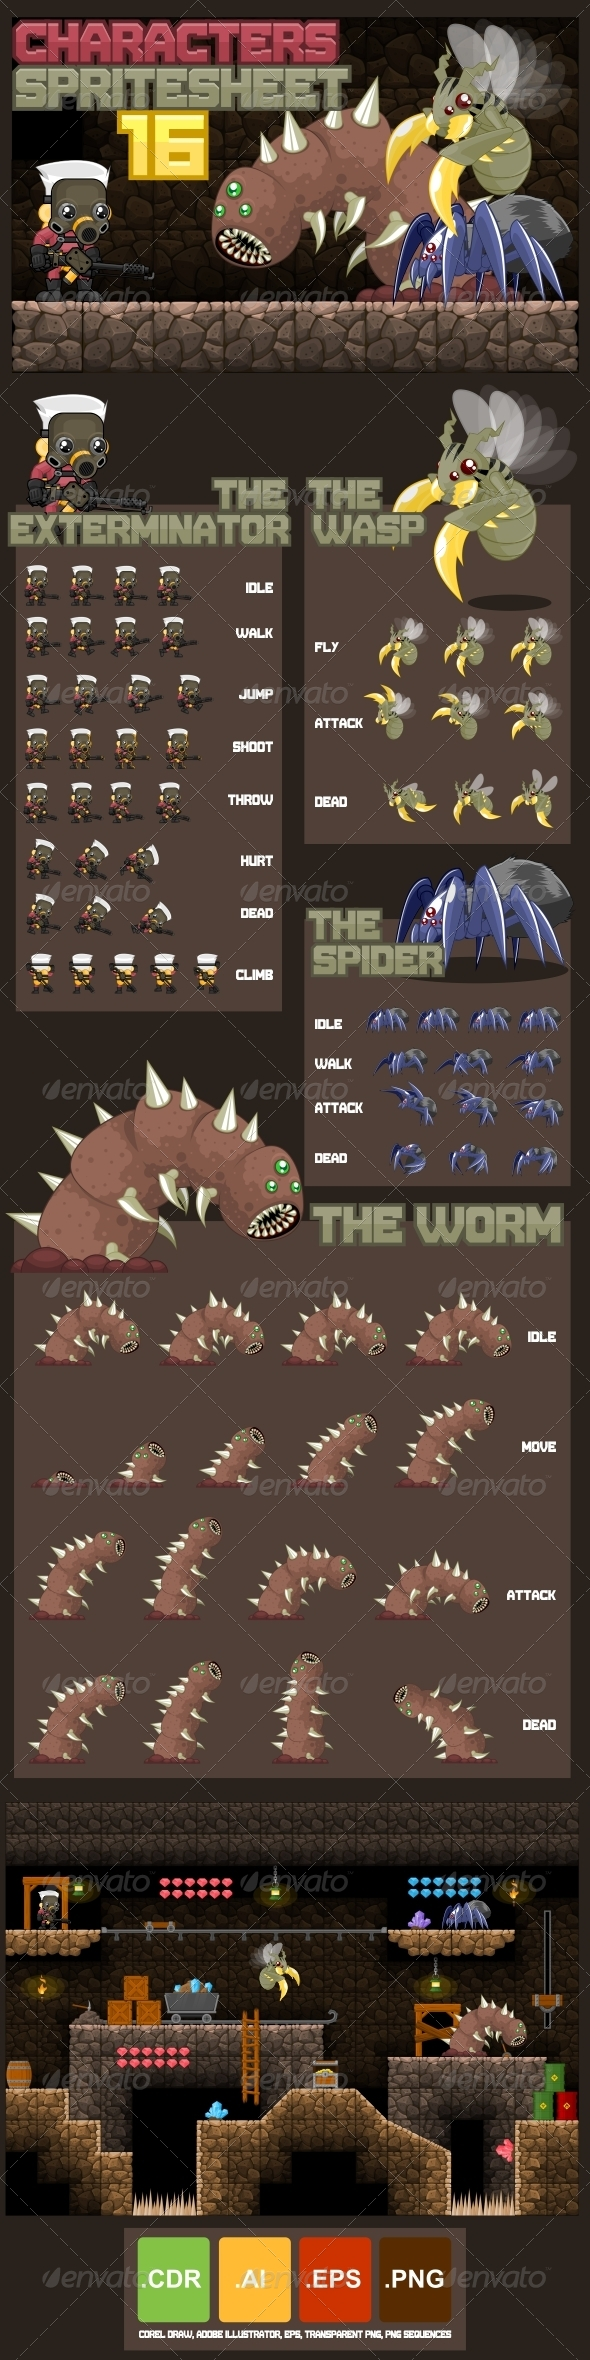 GraphicRiver Characters Spritesheet 16 8561023